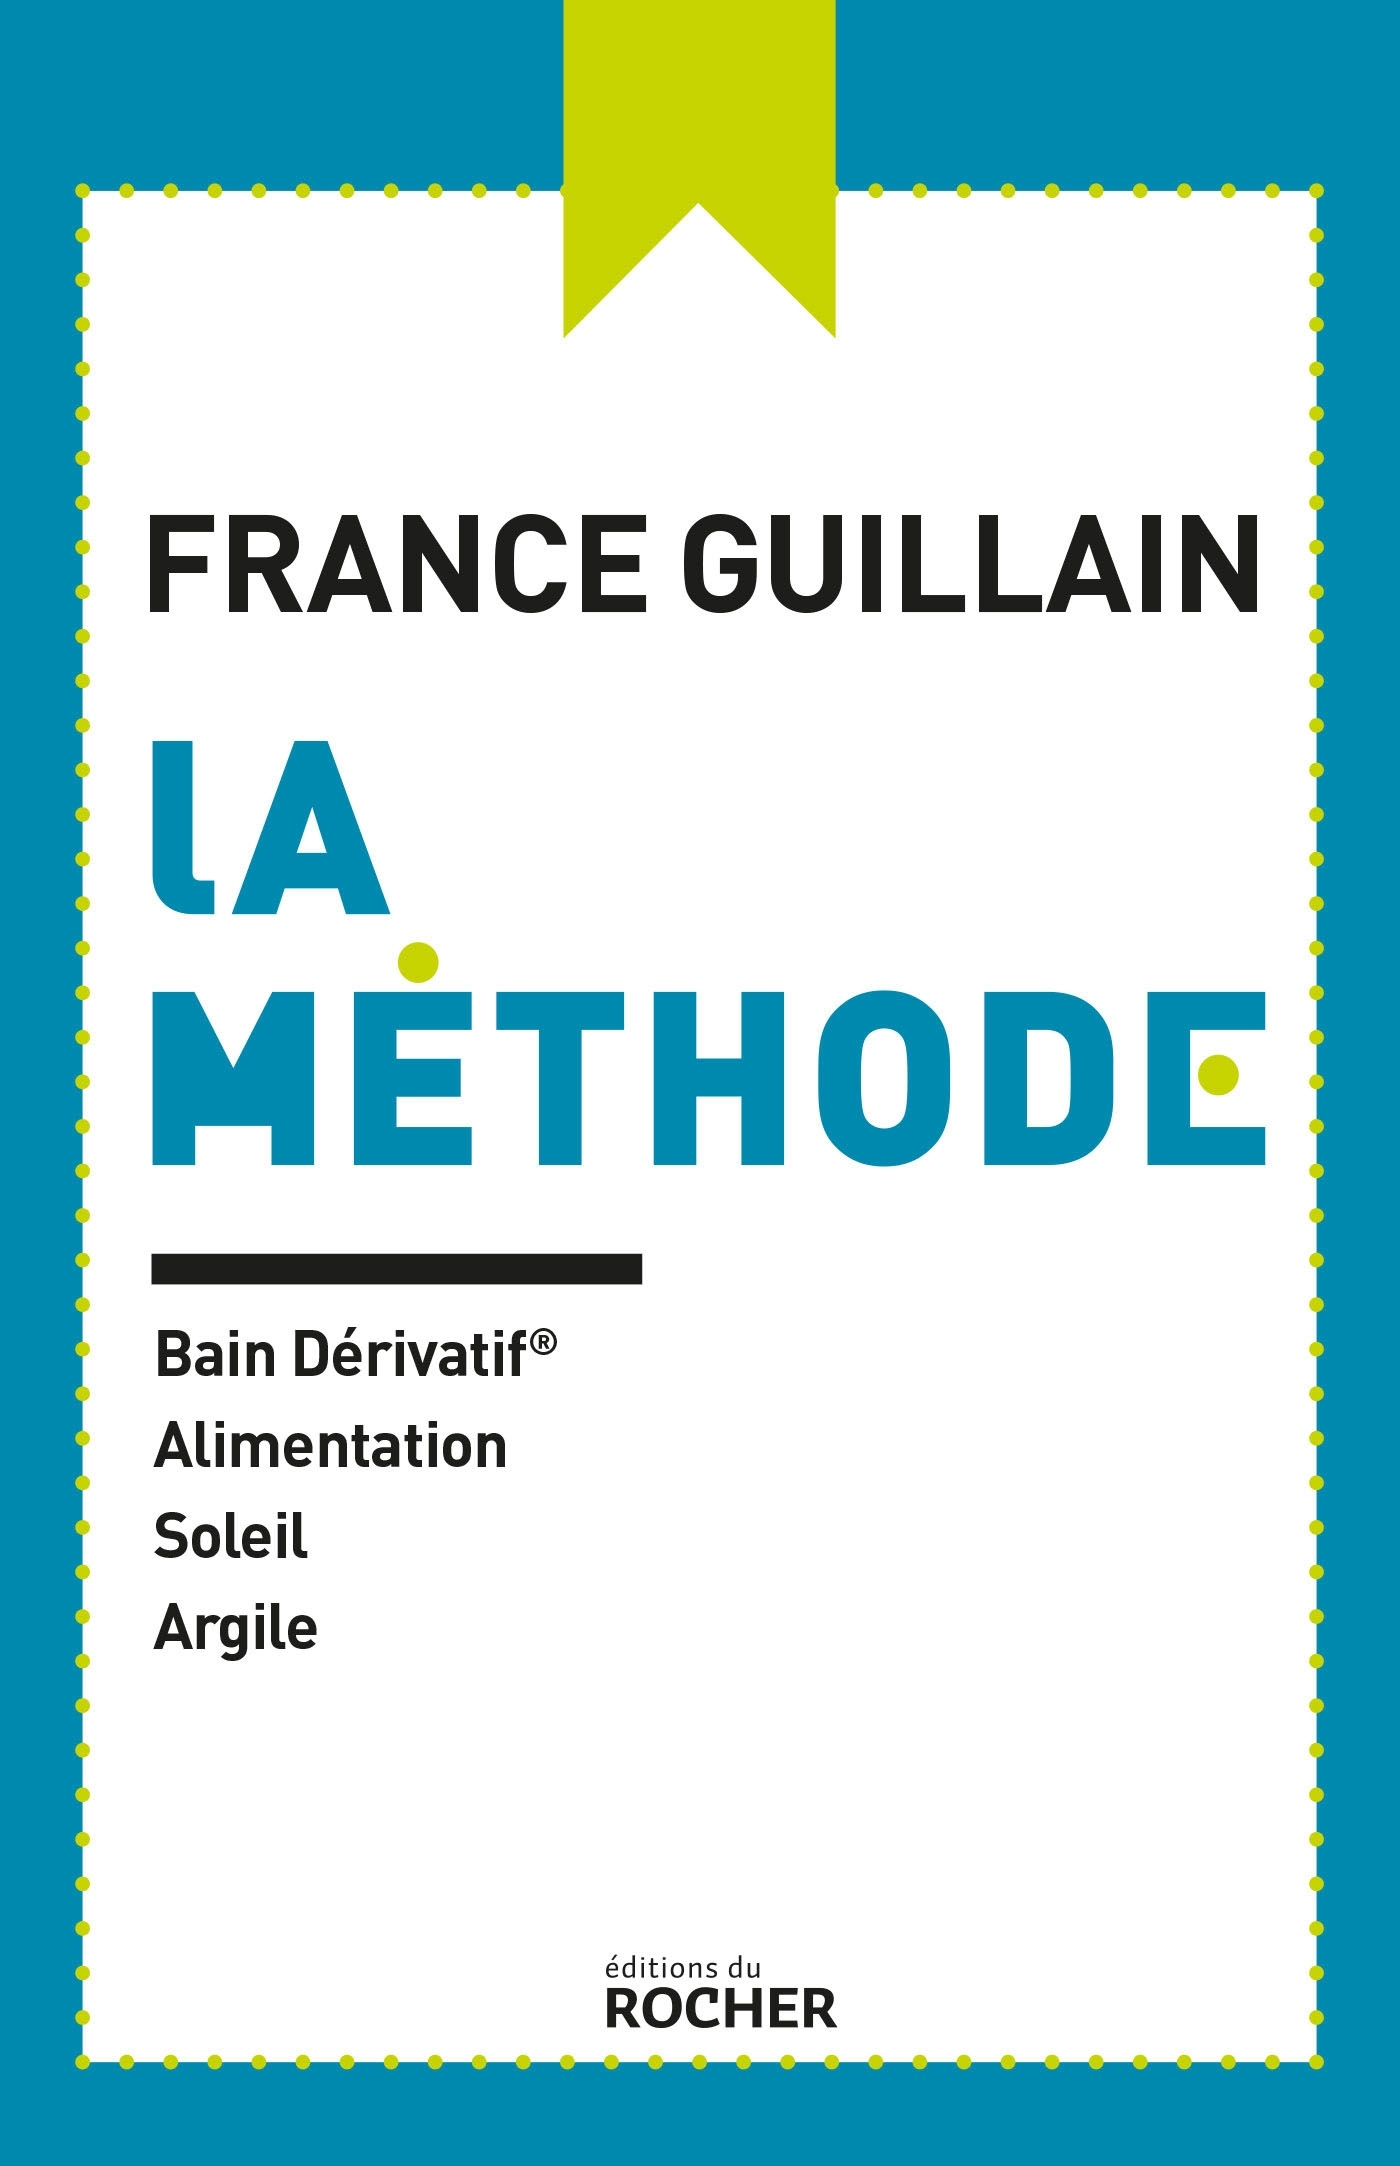 LA METHODE - BAIN DERIVATIF, ALIMENTATION, SOLEIL, ARGILE